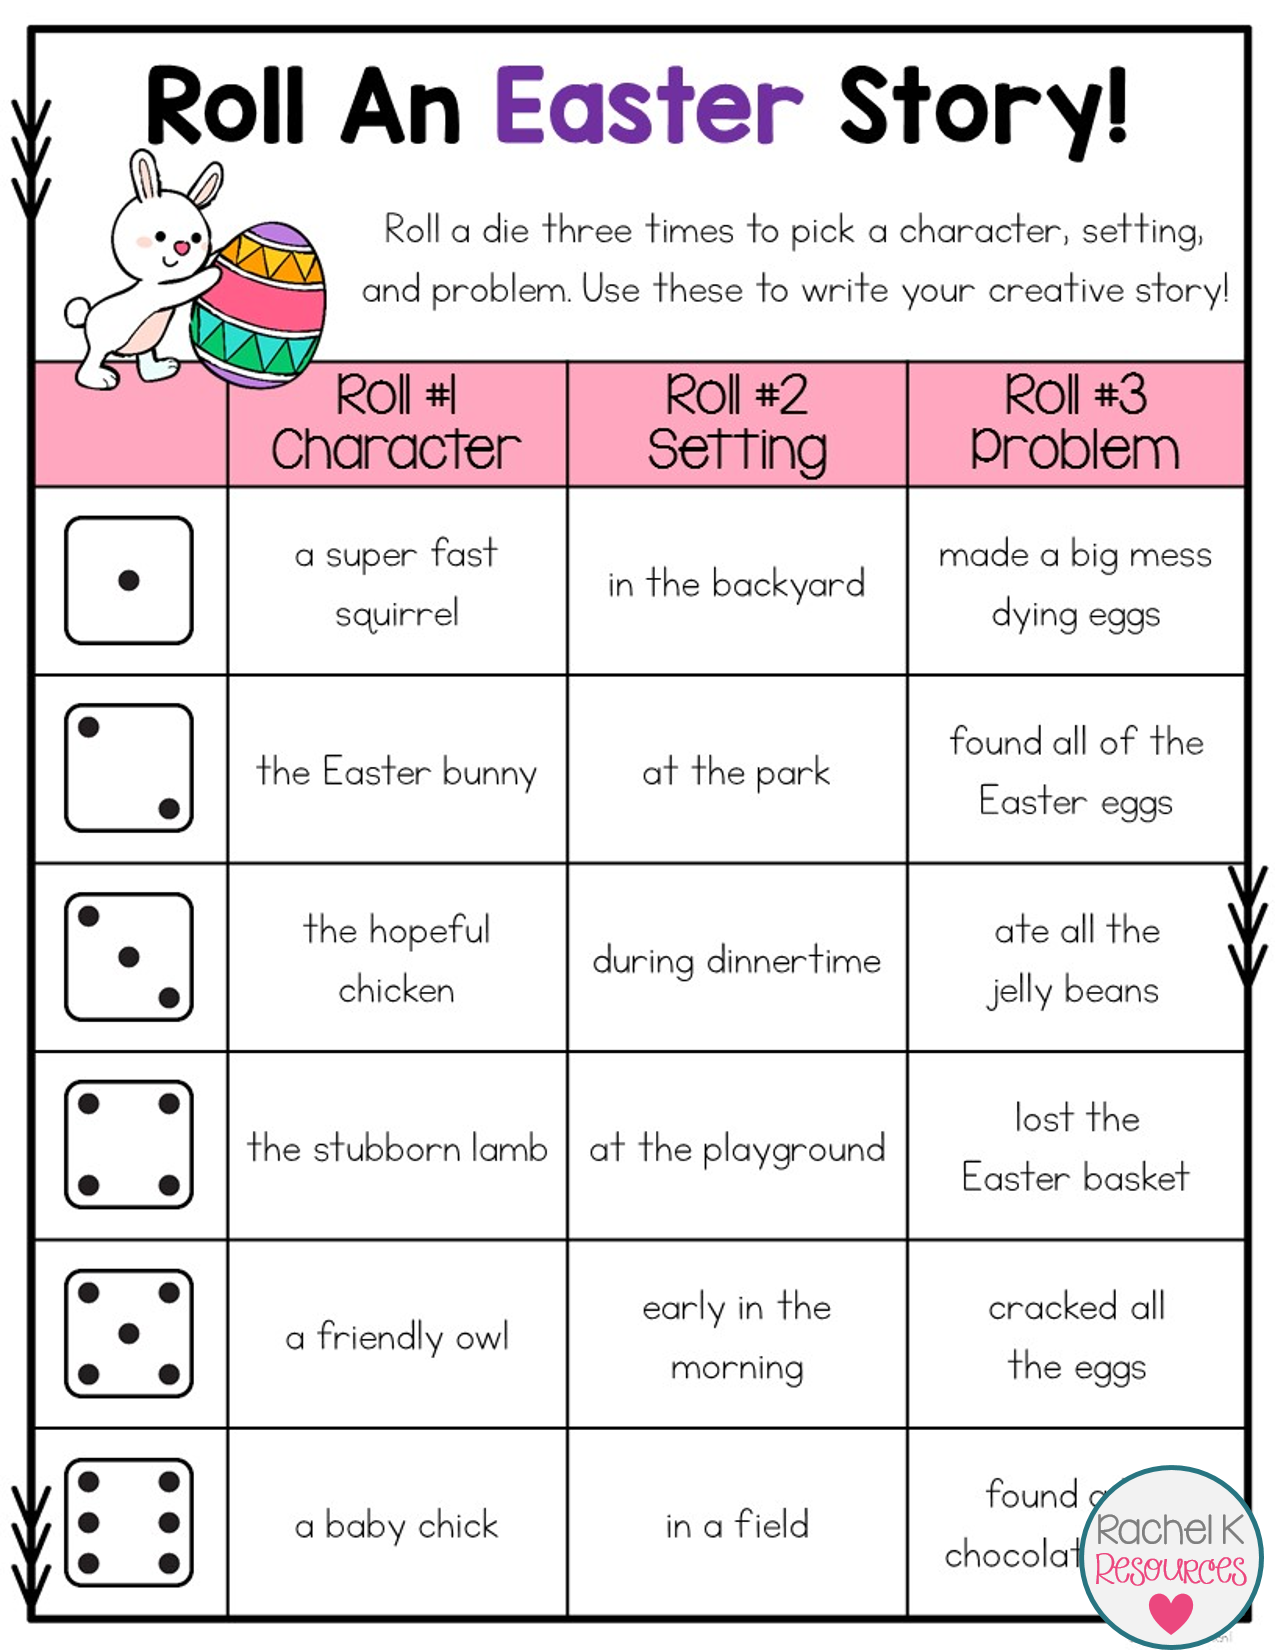 Roll A Story - Writing Activity | Roll A Story, Teaching